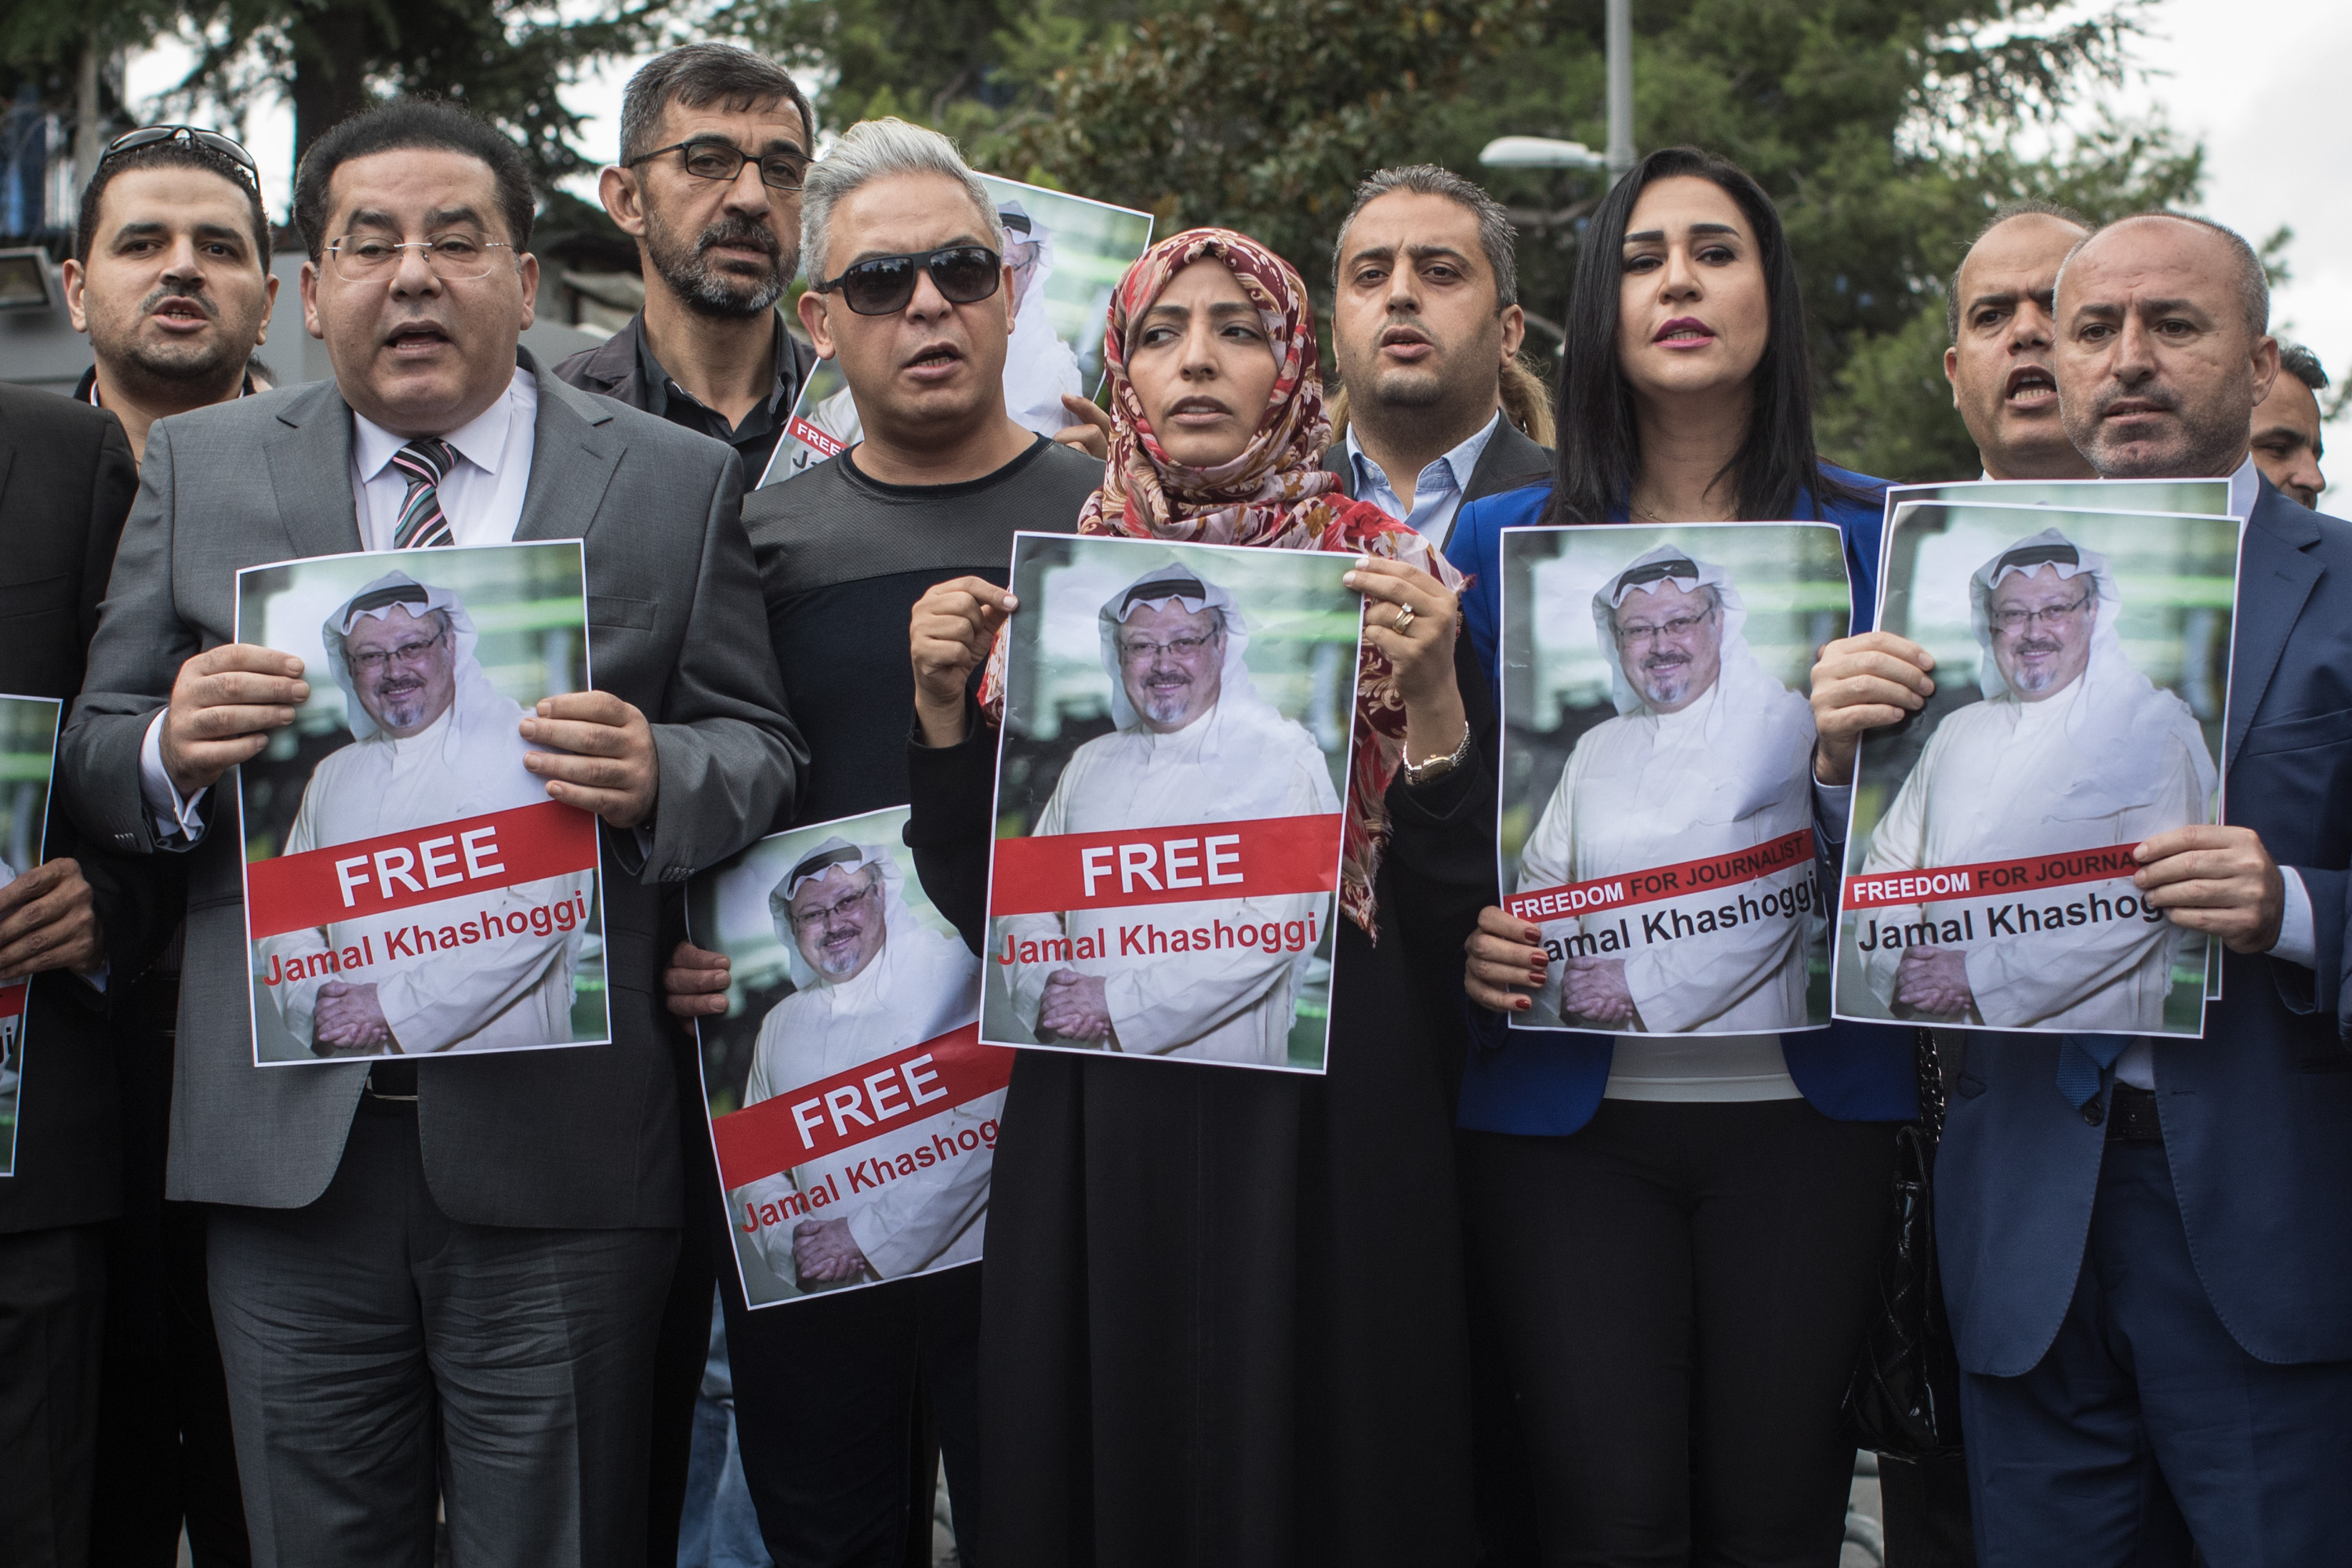 Nobel Prize winner Tawakkol Karman (5th-L) holds a poster of Saudi journalist Jamal Khashoggi during a protest outside Saudi Arabia's consulate on October 8, 2018 in Istanbul, Turkey.